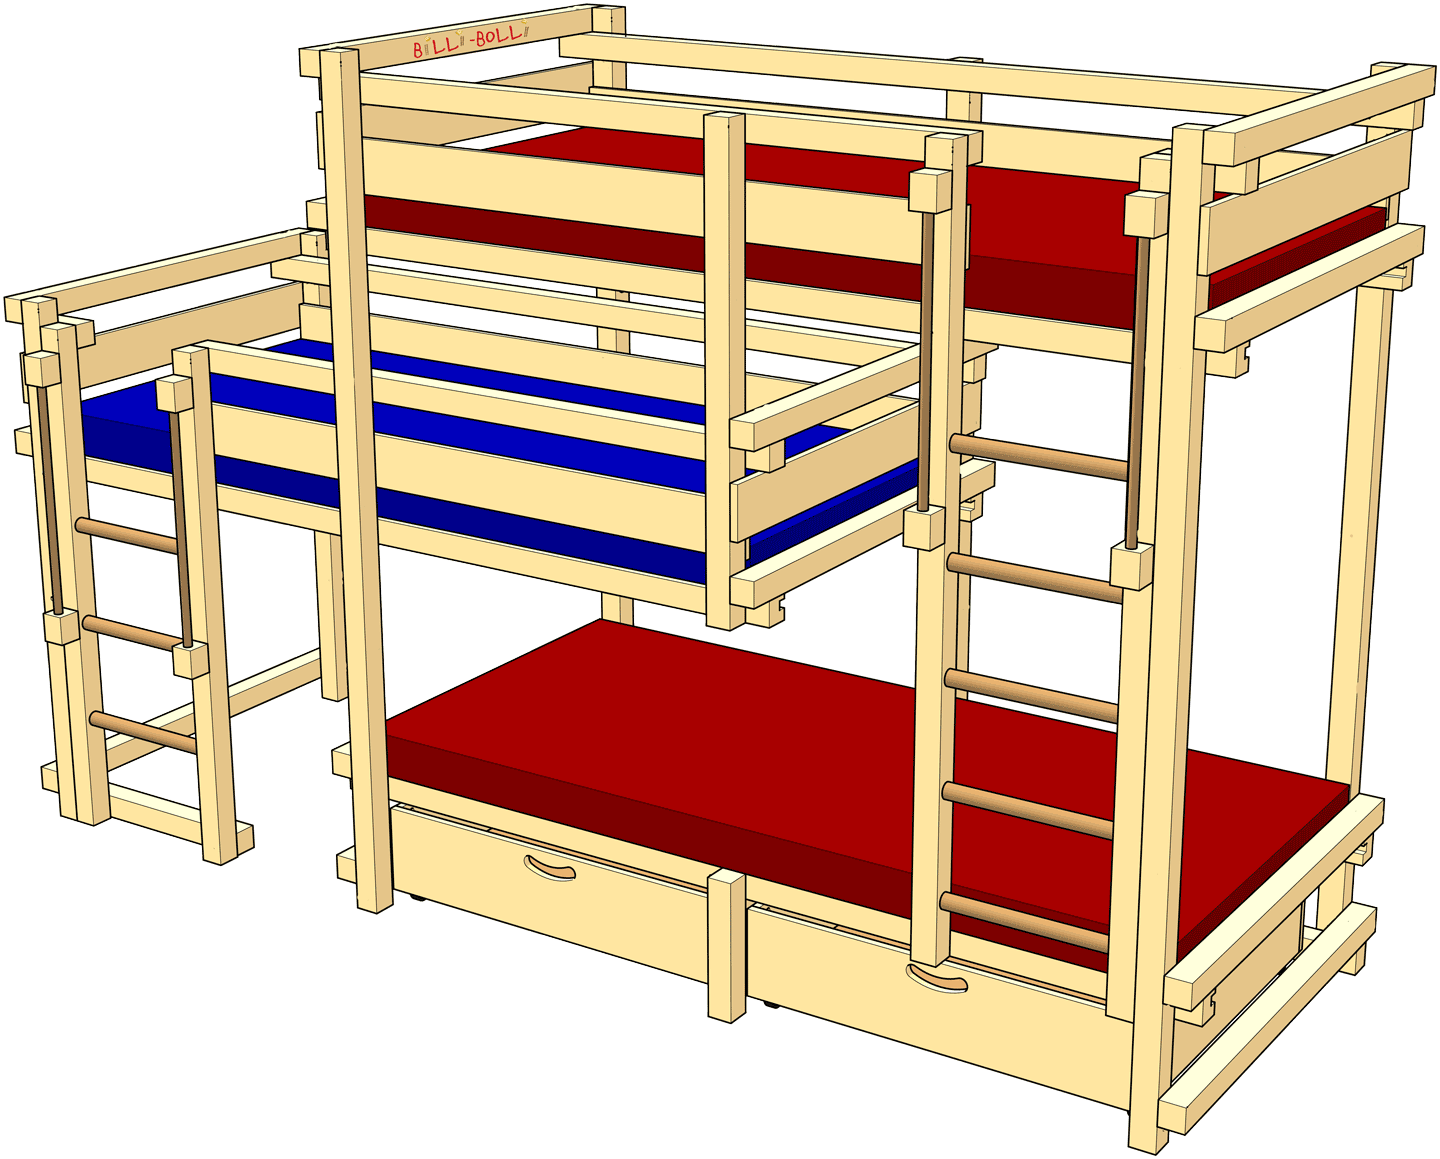 Beds for Three, Type 1B